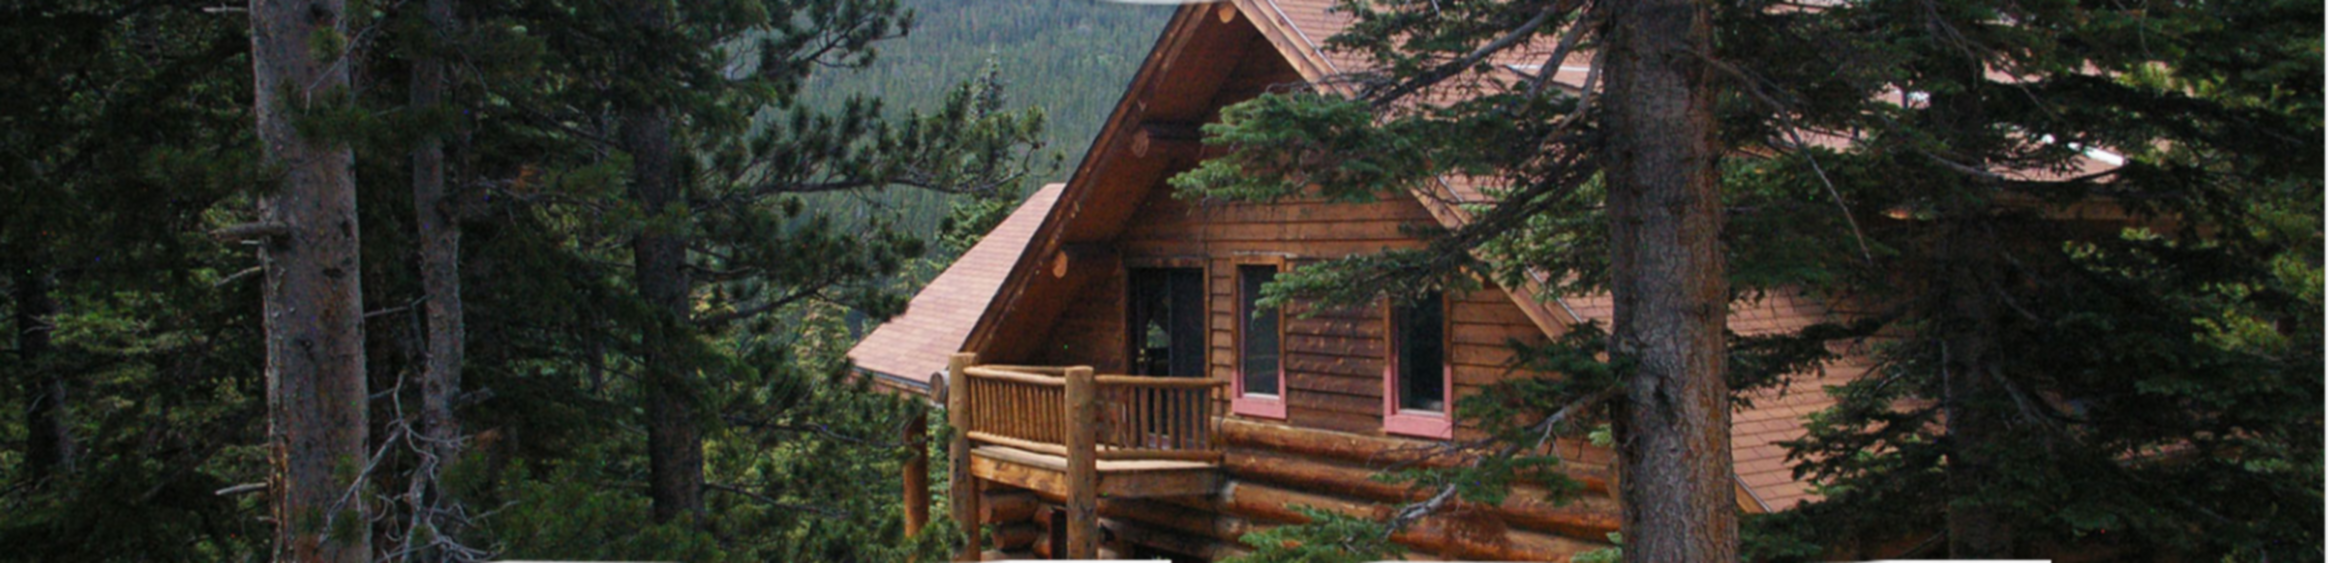 A house with trees in the background at The Silver Lake Lodge.